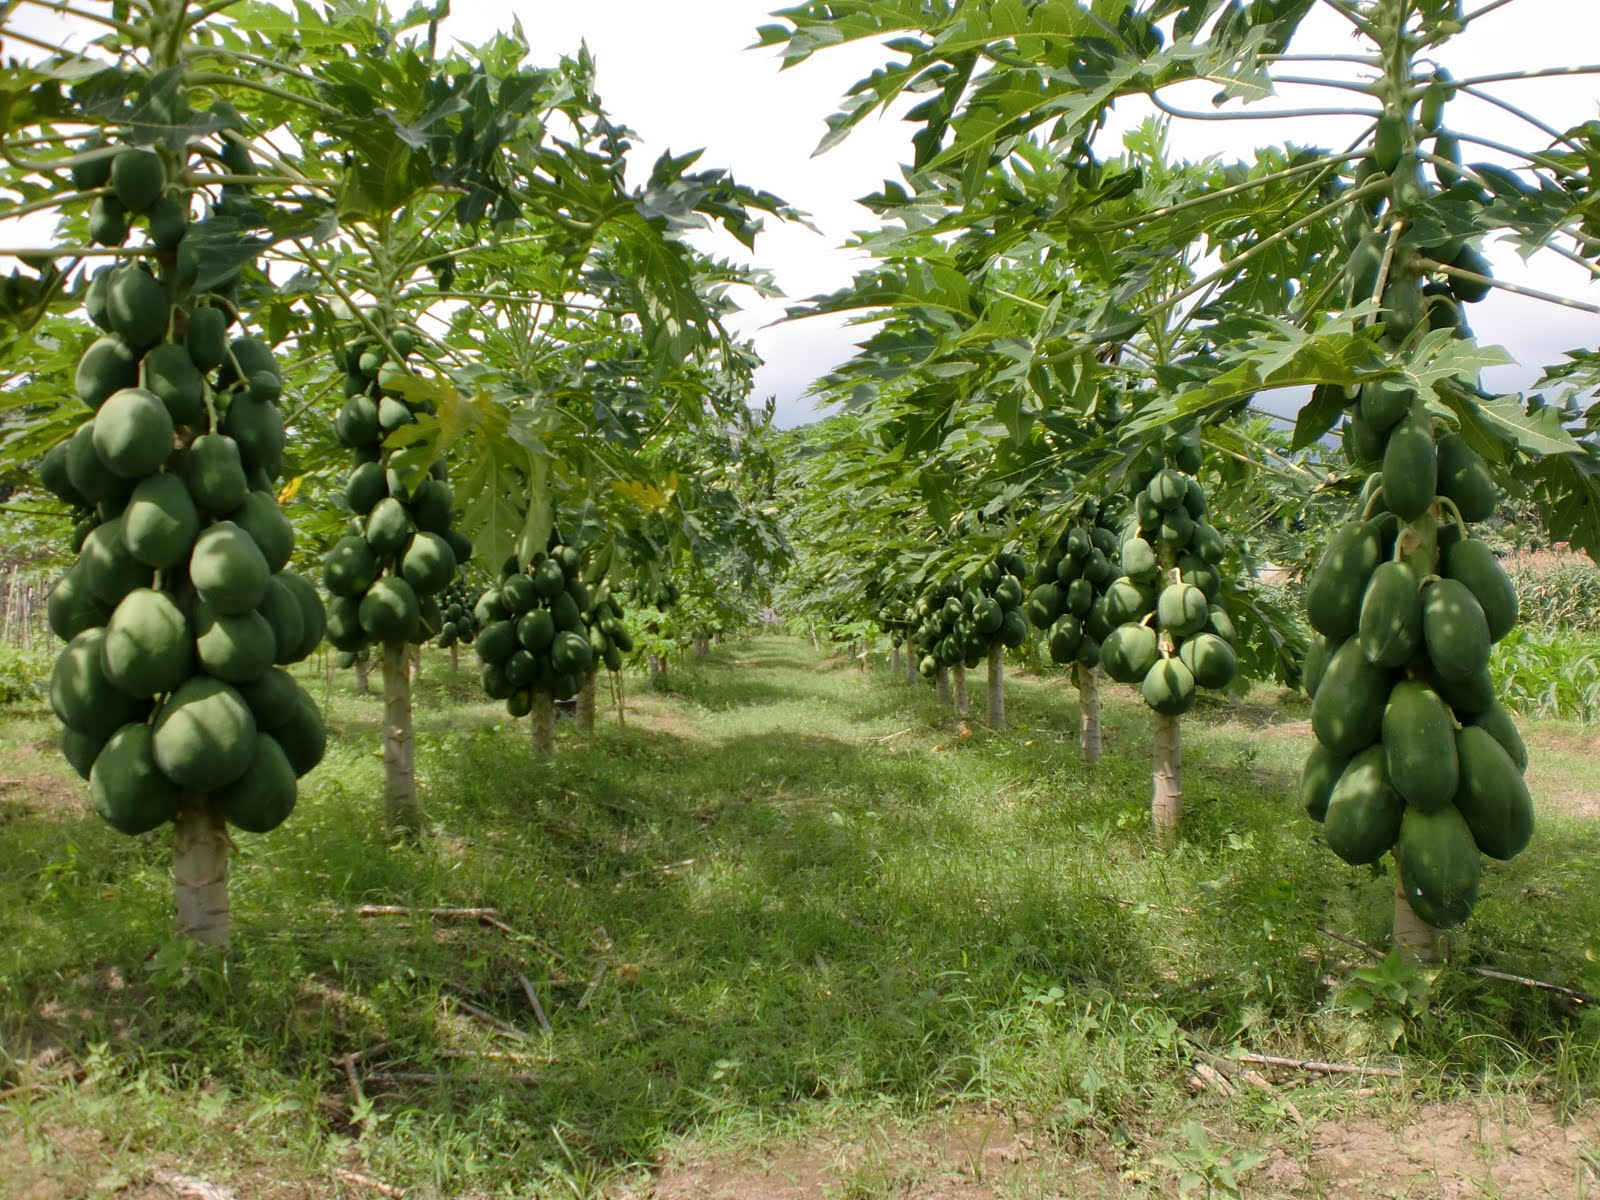 papaya trees